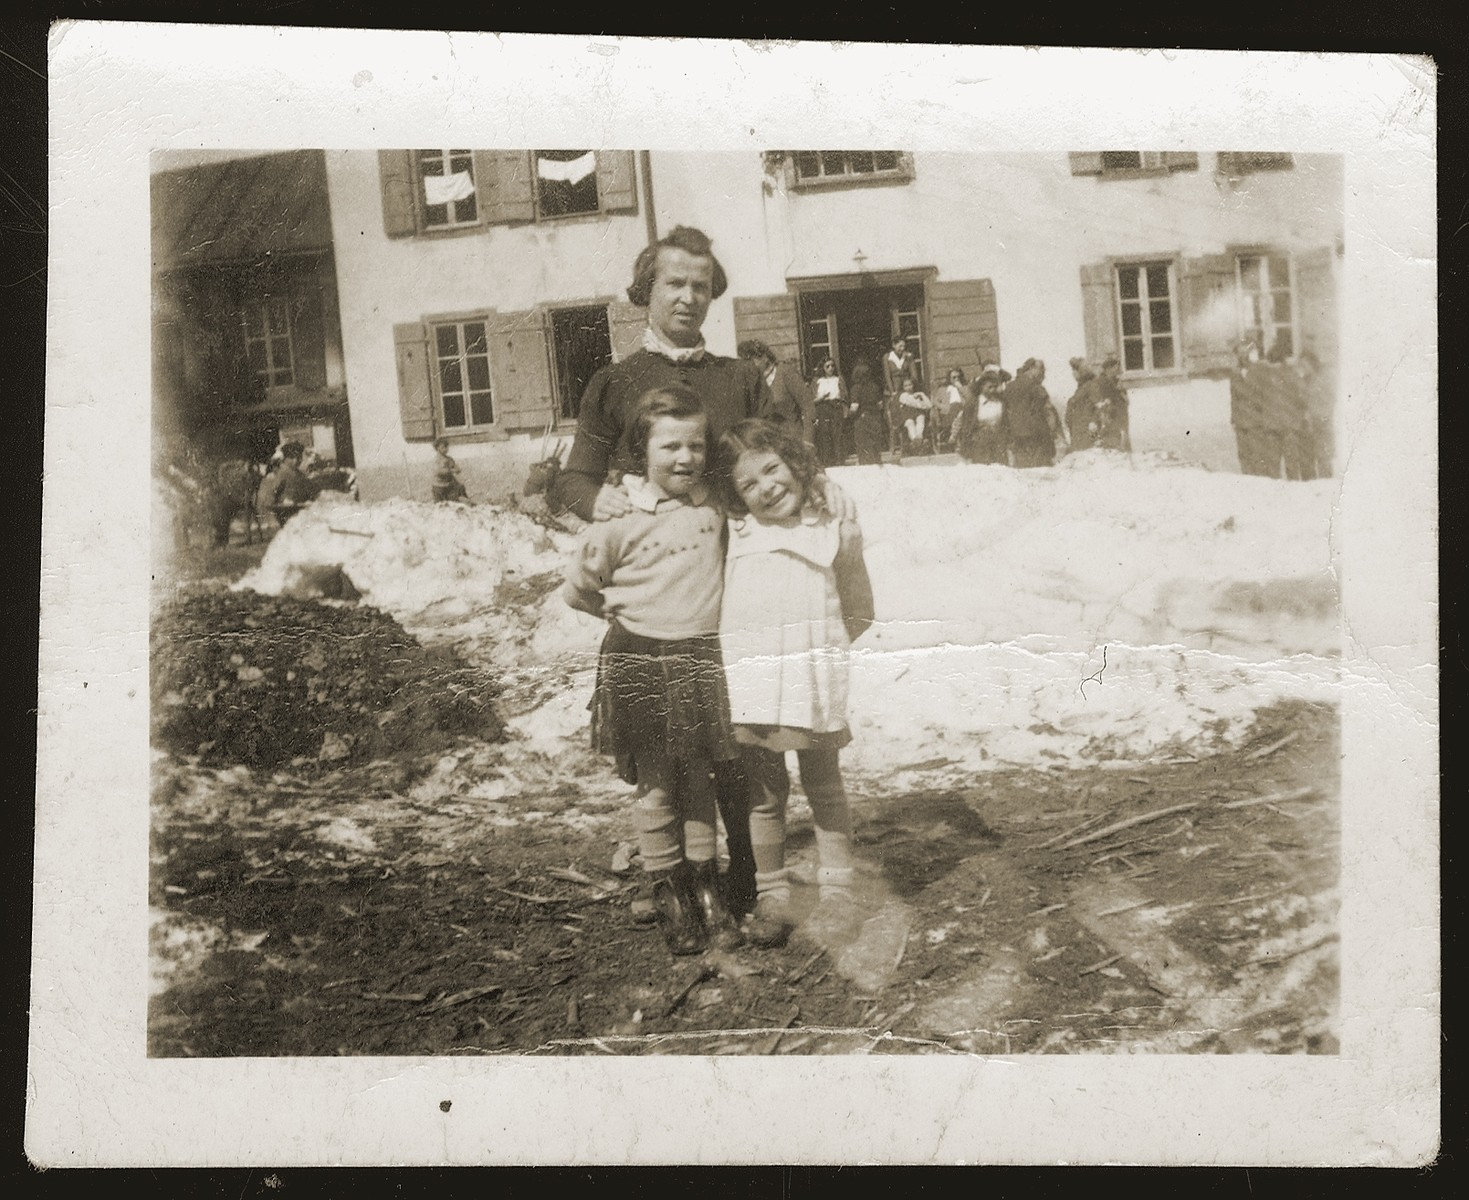 Frieda Johles poses with her mother, Malka Johles and a friend outside the main building of the Morgins family camp which housed the adults.